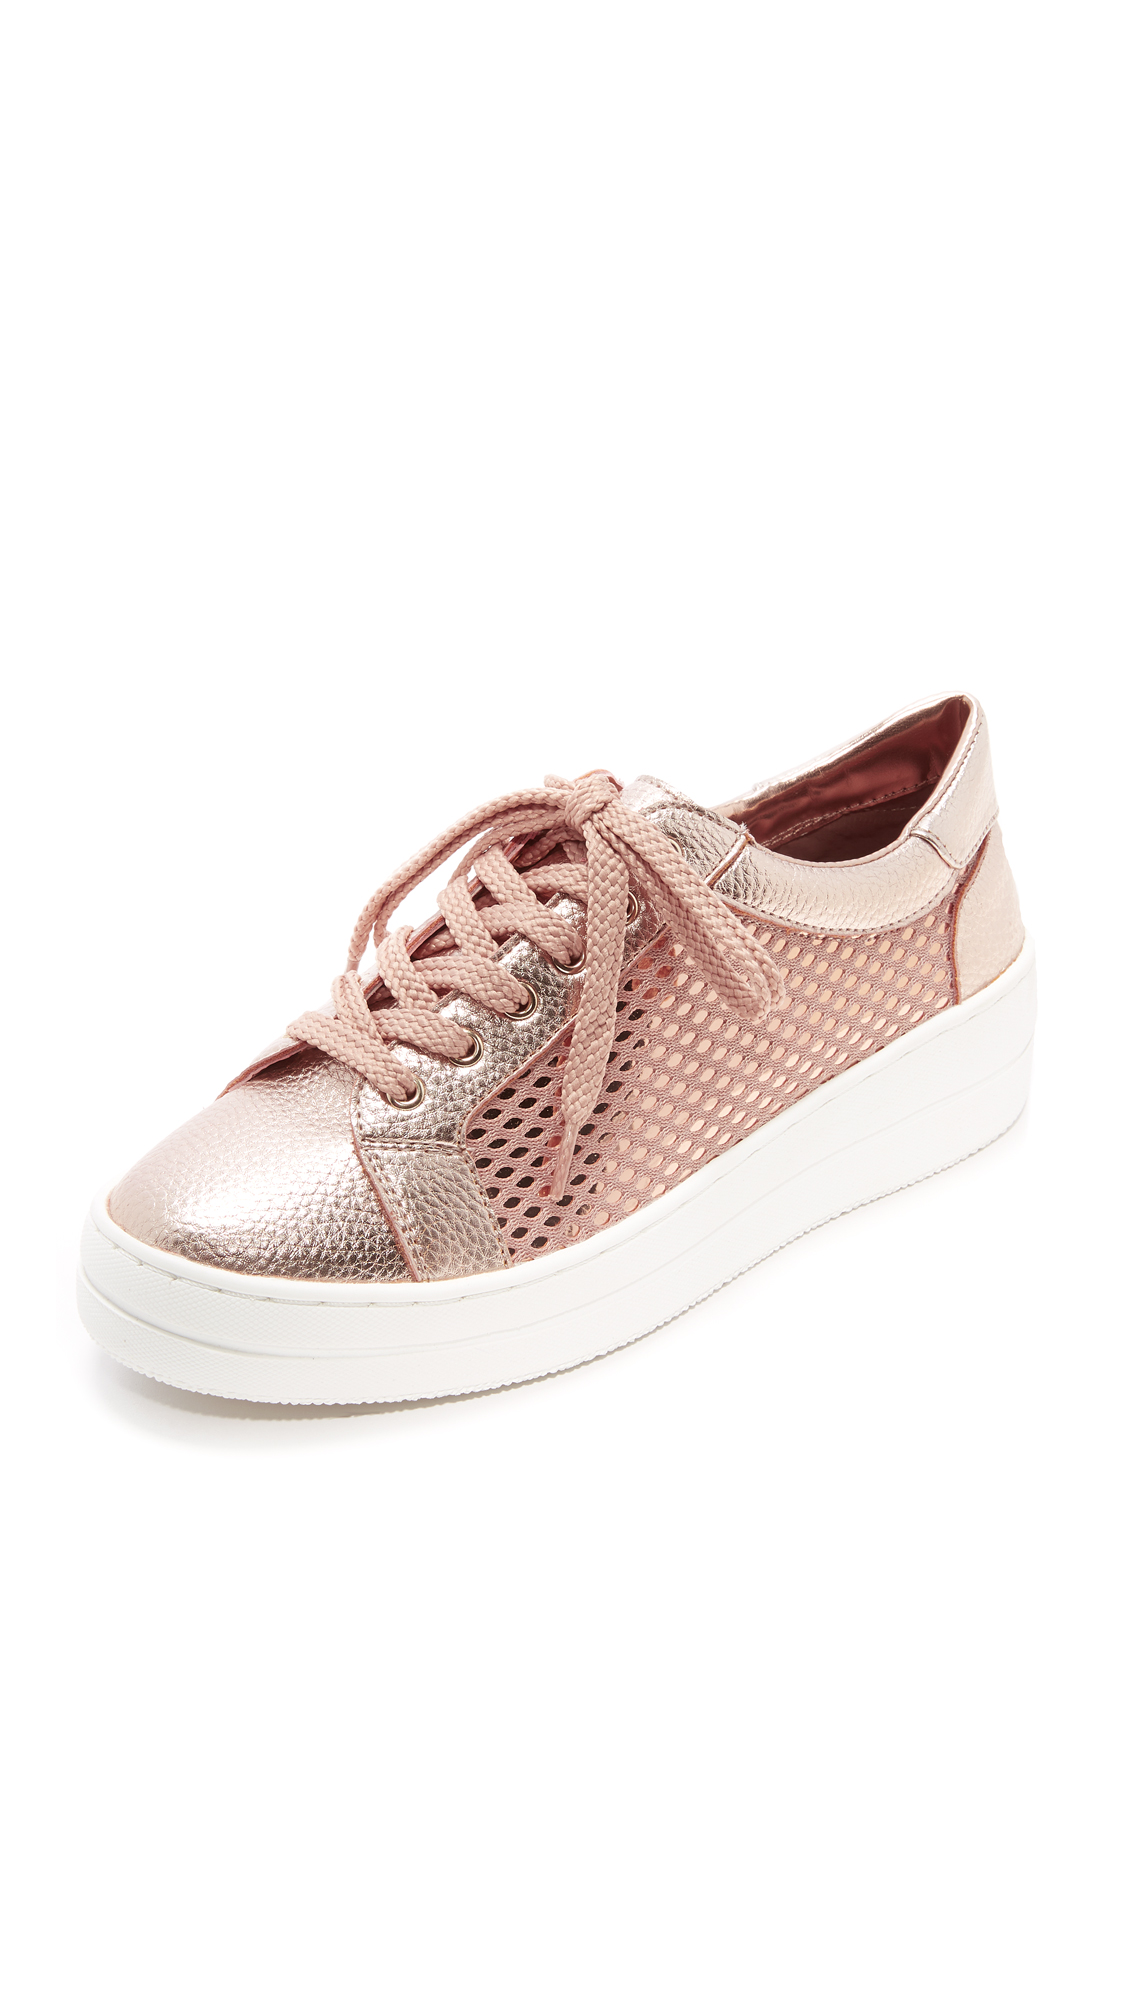 Steven Nyssa Lace Up Sneakers - Rose Gold